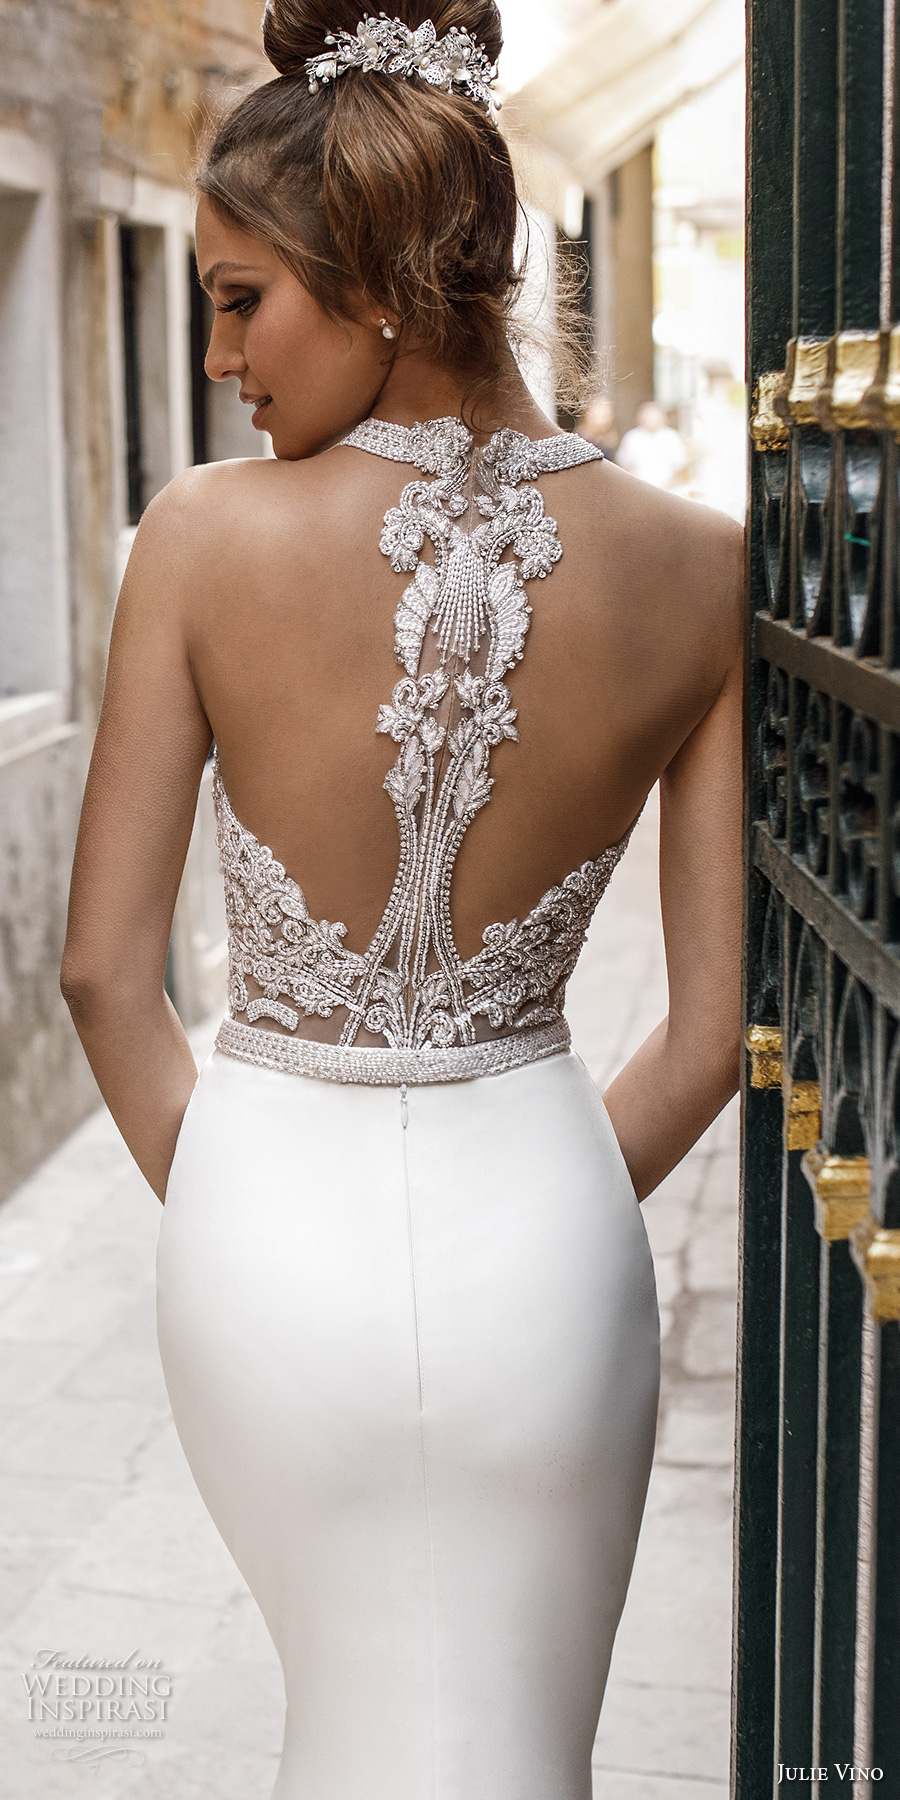 julie vino spring 2018 bridal sleeveless halter neck heavily embellished bodice elegant chic fit and flare sheath wedding dress rasor back chapel train (11) zbv